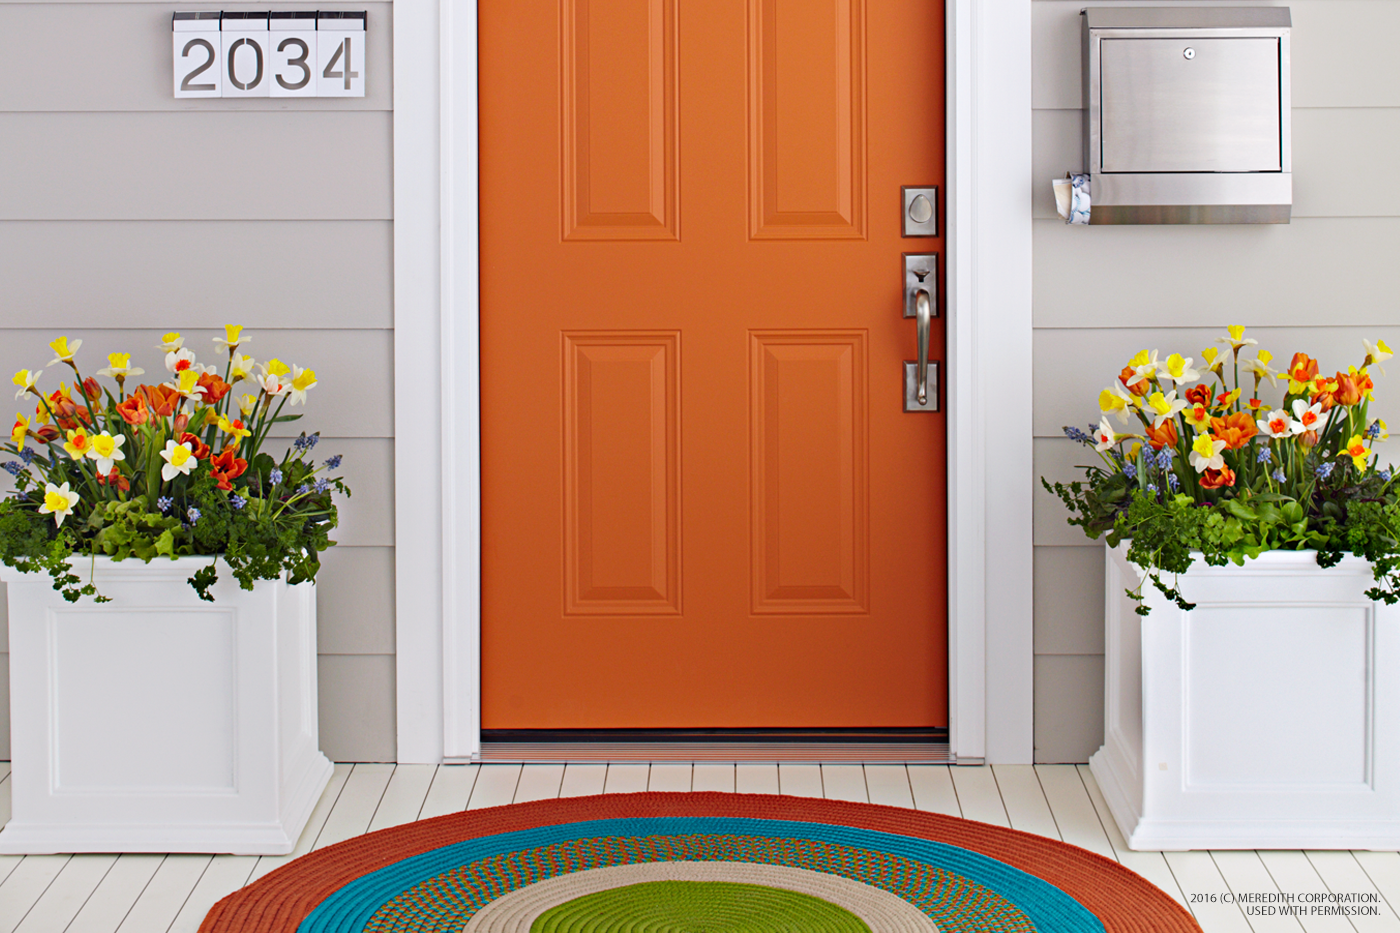 Allow Entryway Inspiration to Strike with These Fresh New Ideas - bhgrelife.com